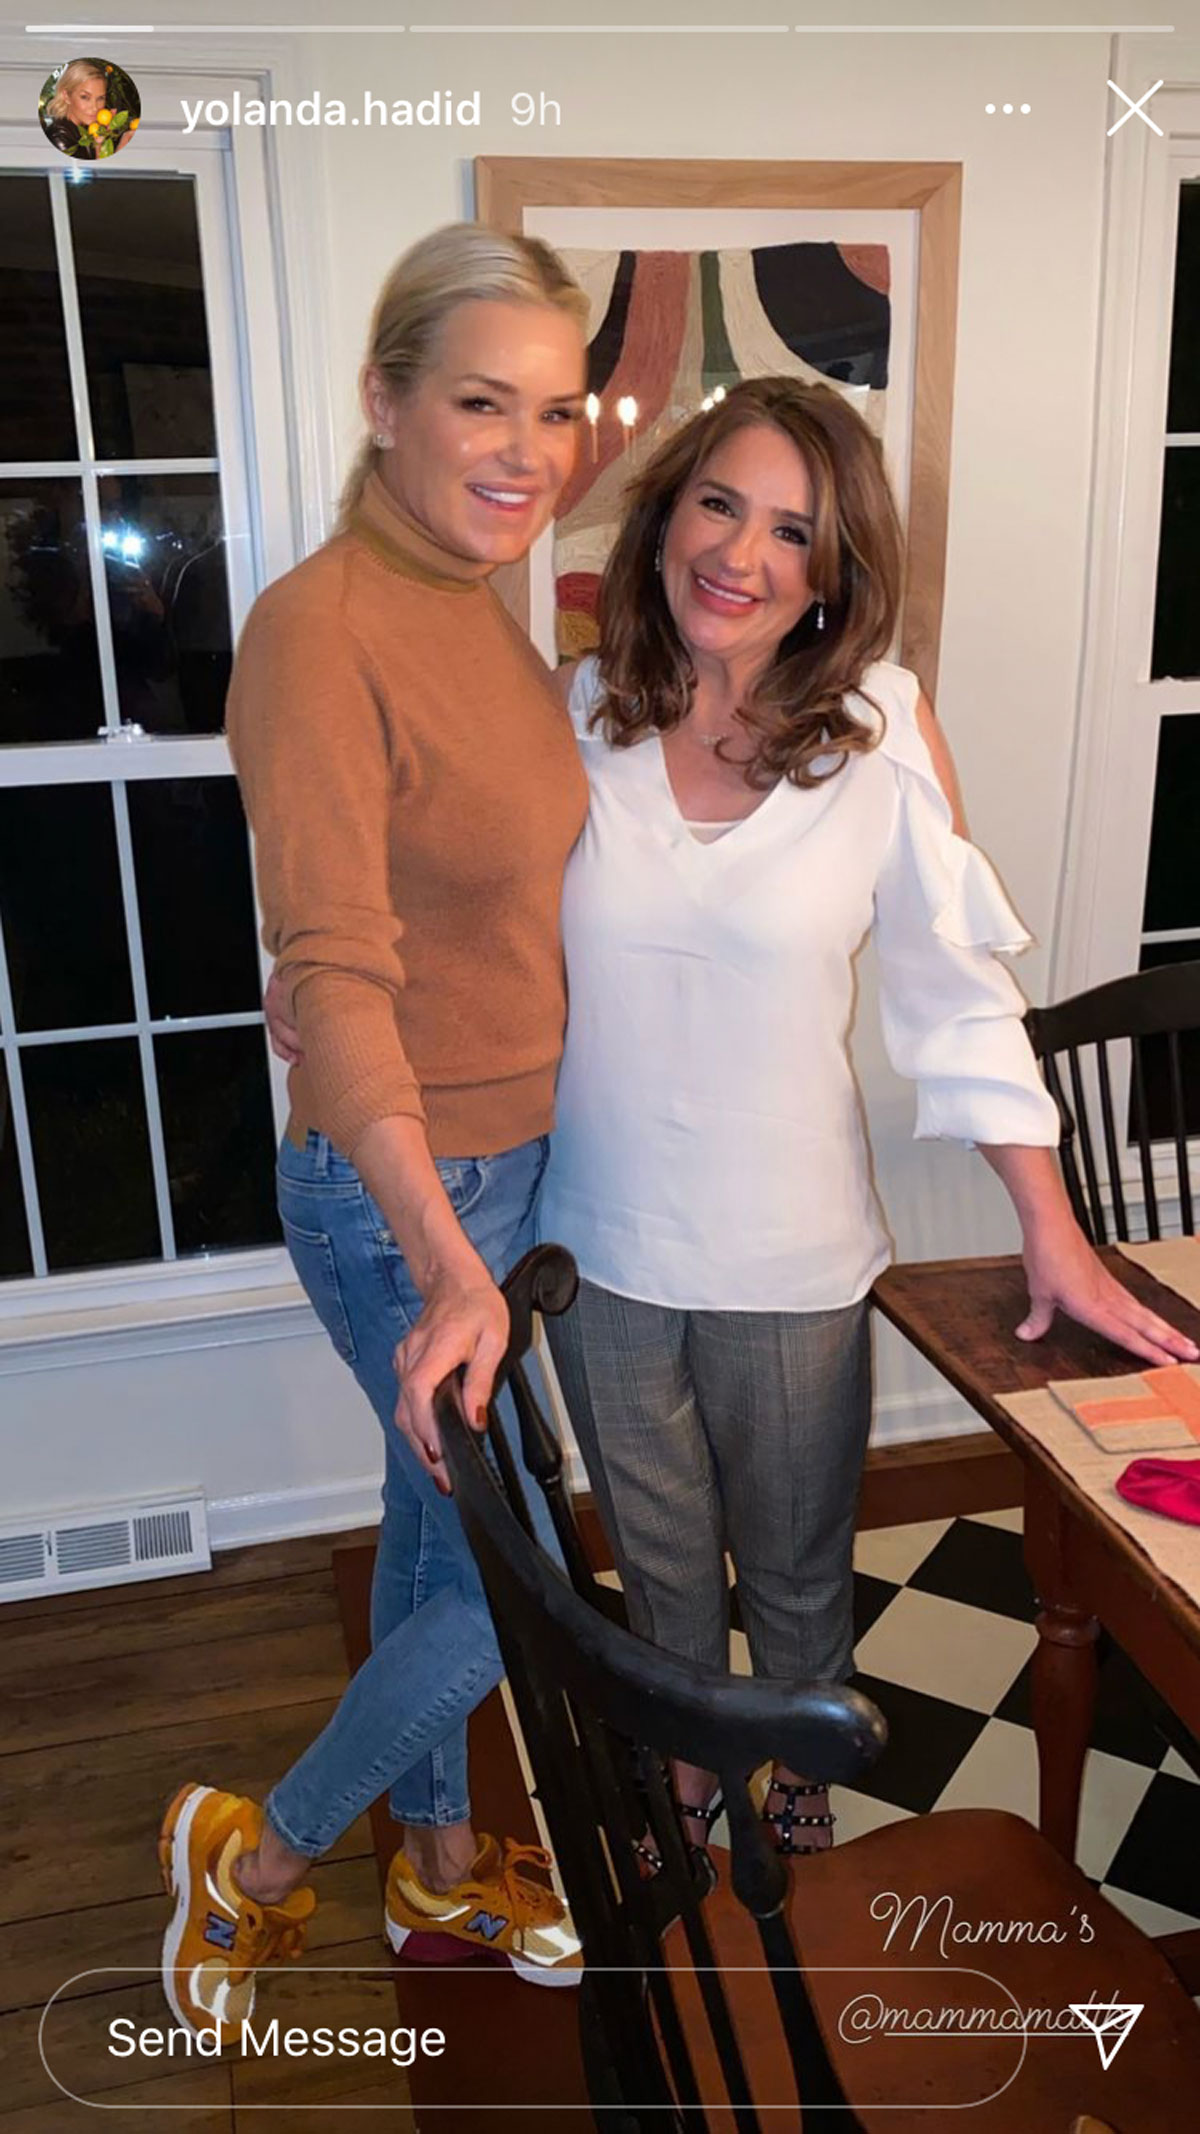 Yolanda Hadid and Tricia Malik seen enjoying their Thanksgiving time together as proud grandmas!